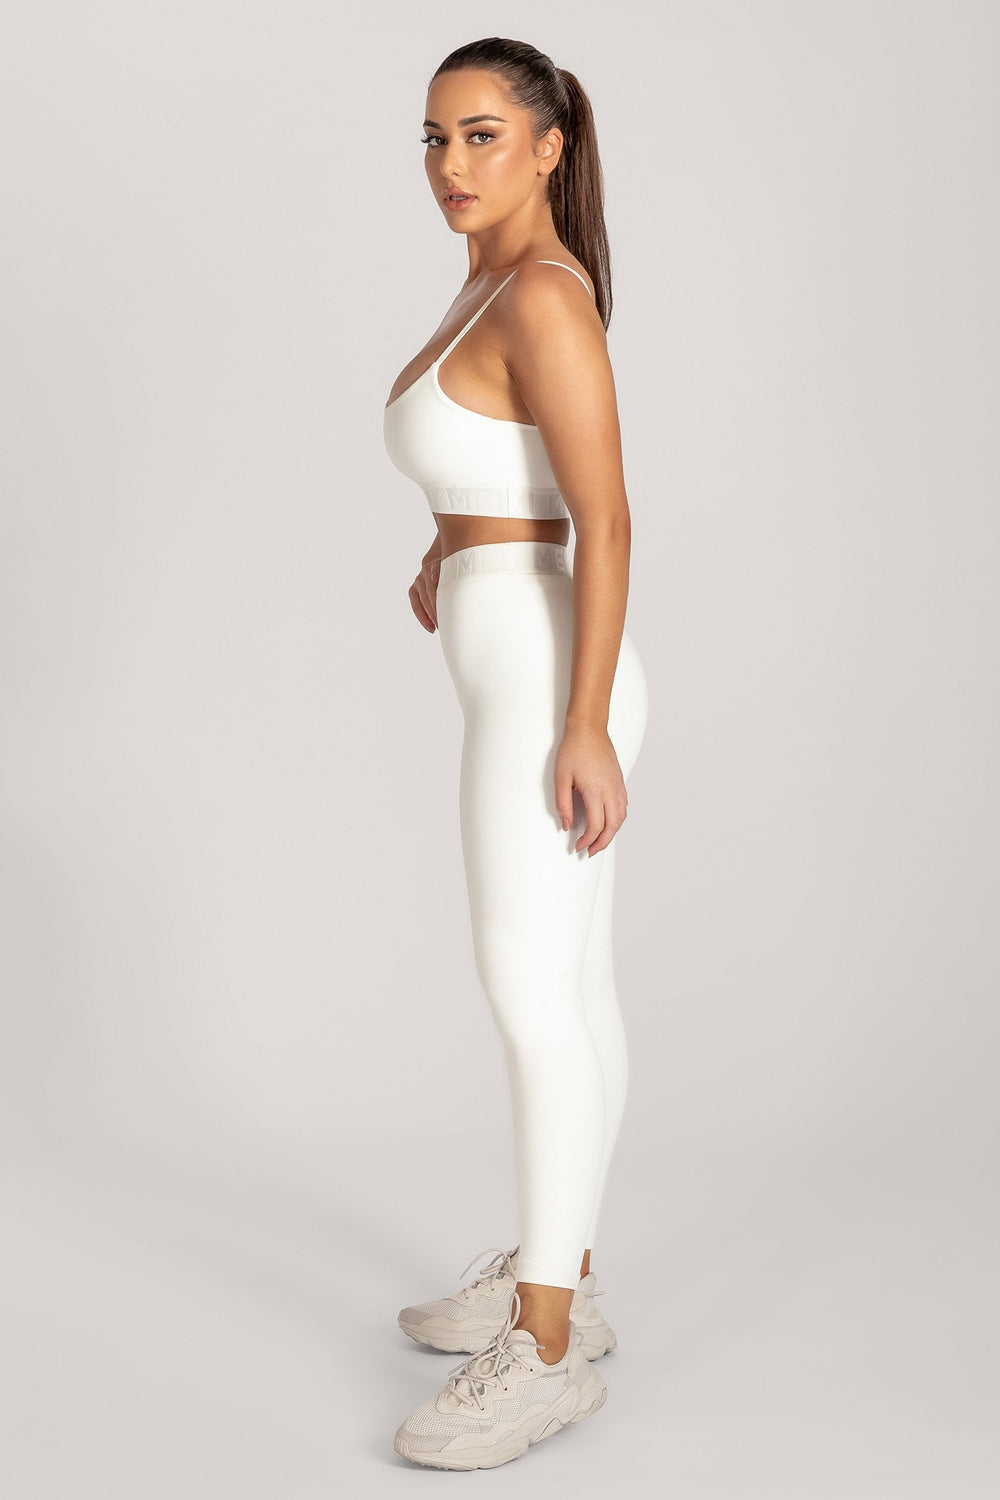 Acacia Meshki Full Length Leggings - White - MESHKI ?id=16076113576011